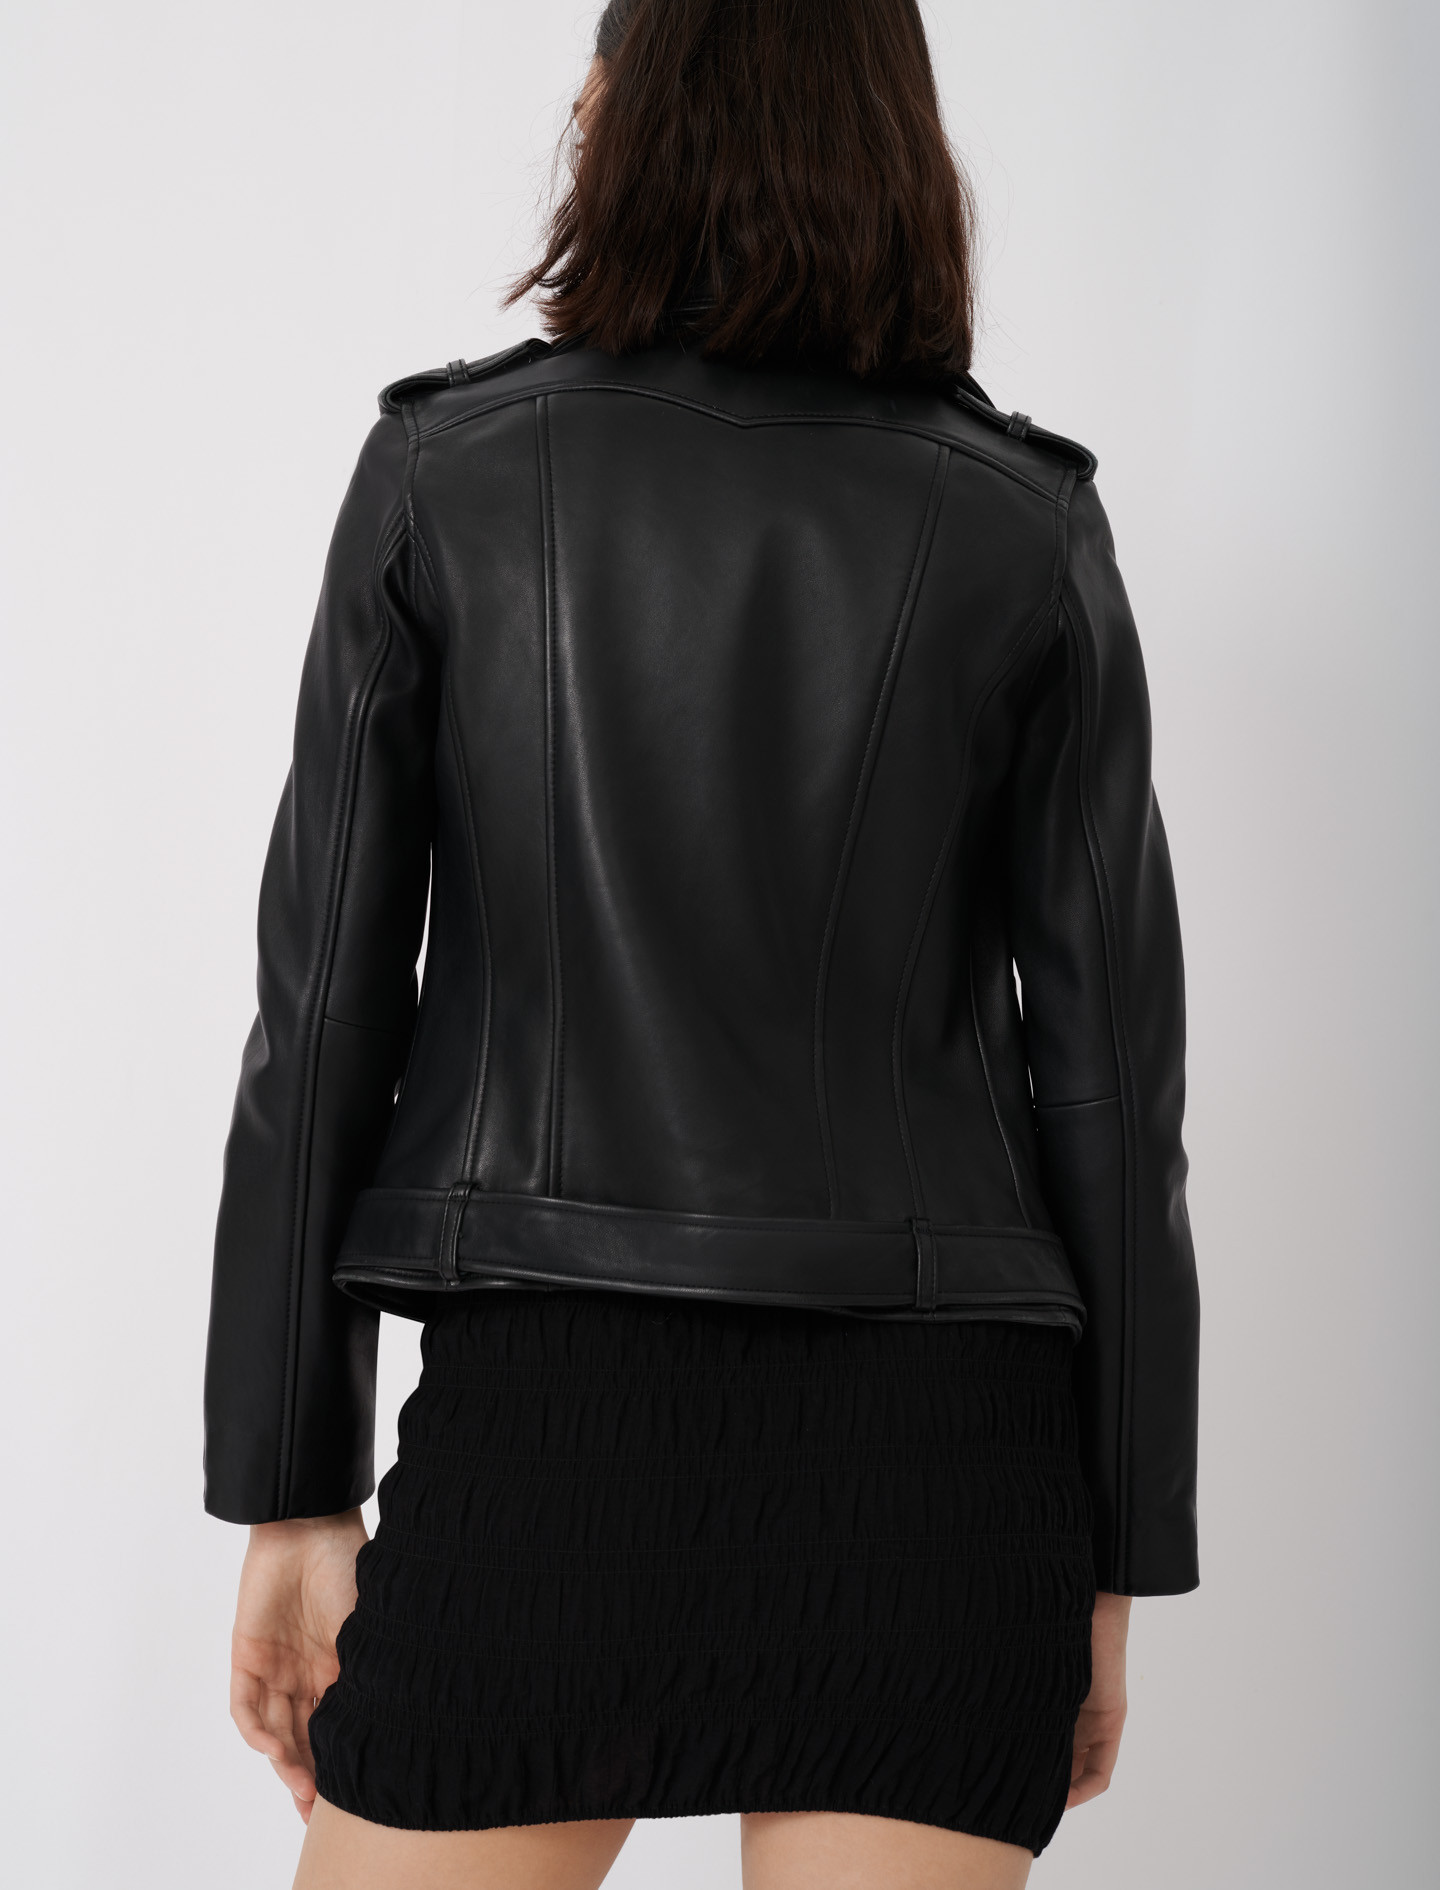 Leather biker jacket and belt - Black